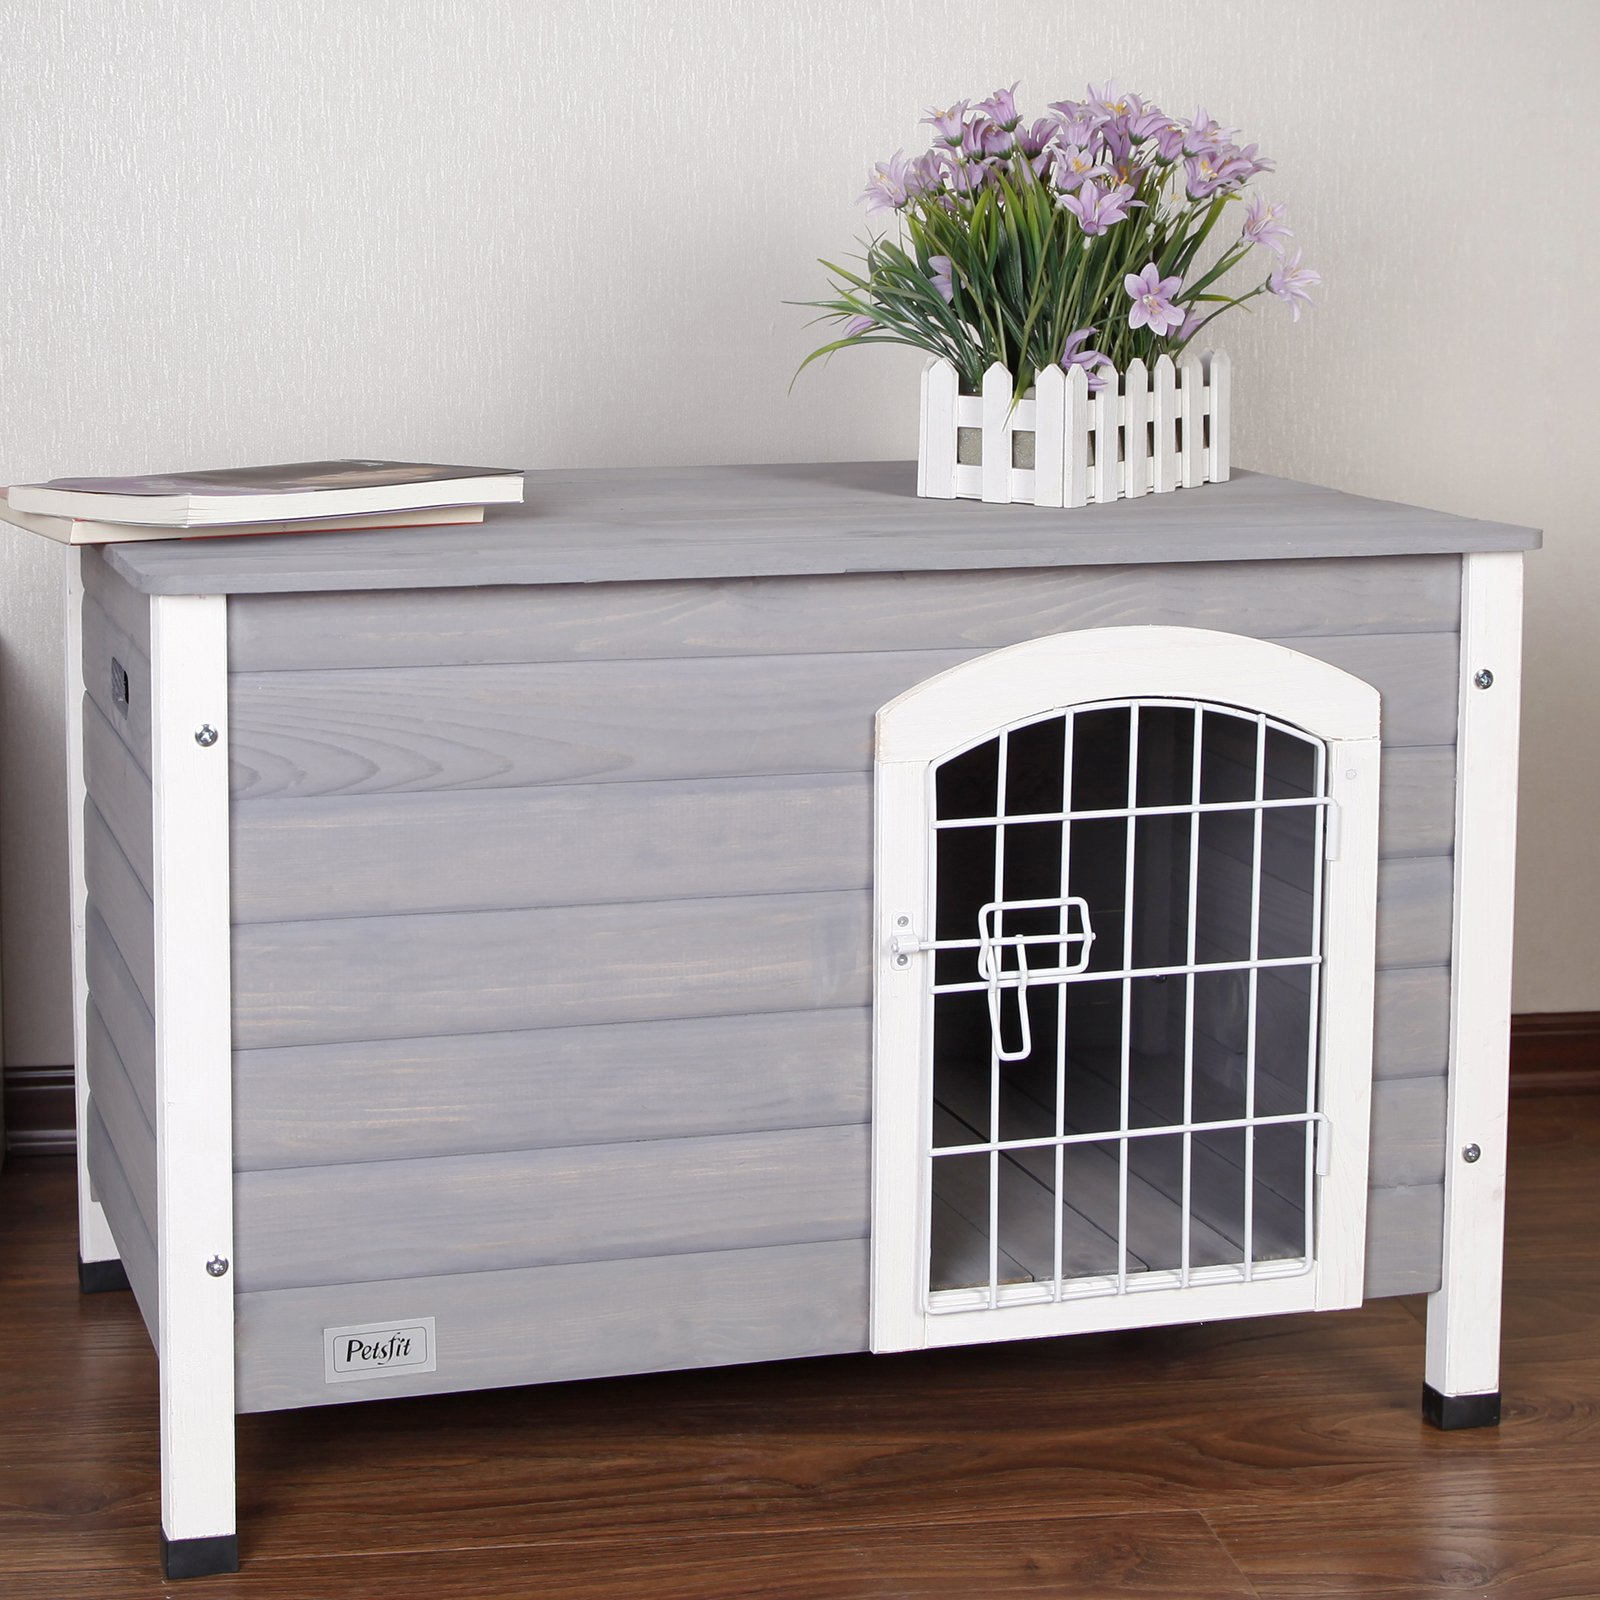 Petsfit 31.5'' Lx21.5 Wx21 H Indoor Dog House Wooden With Door For Small Dog Color Grey